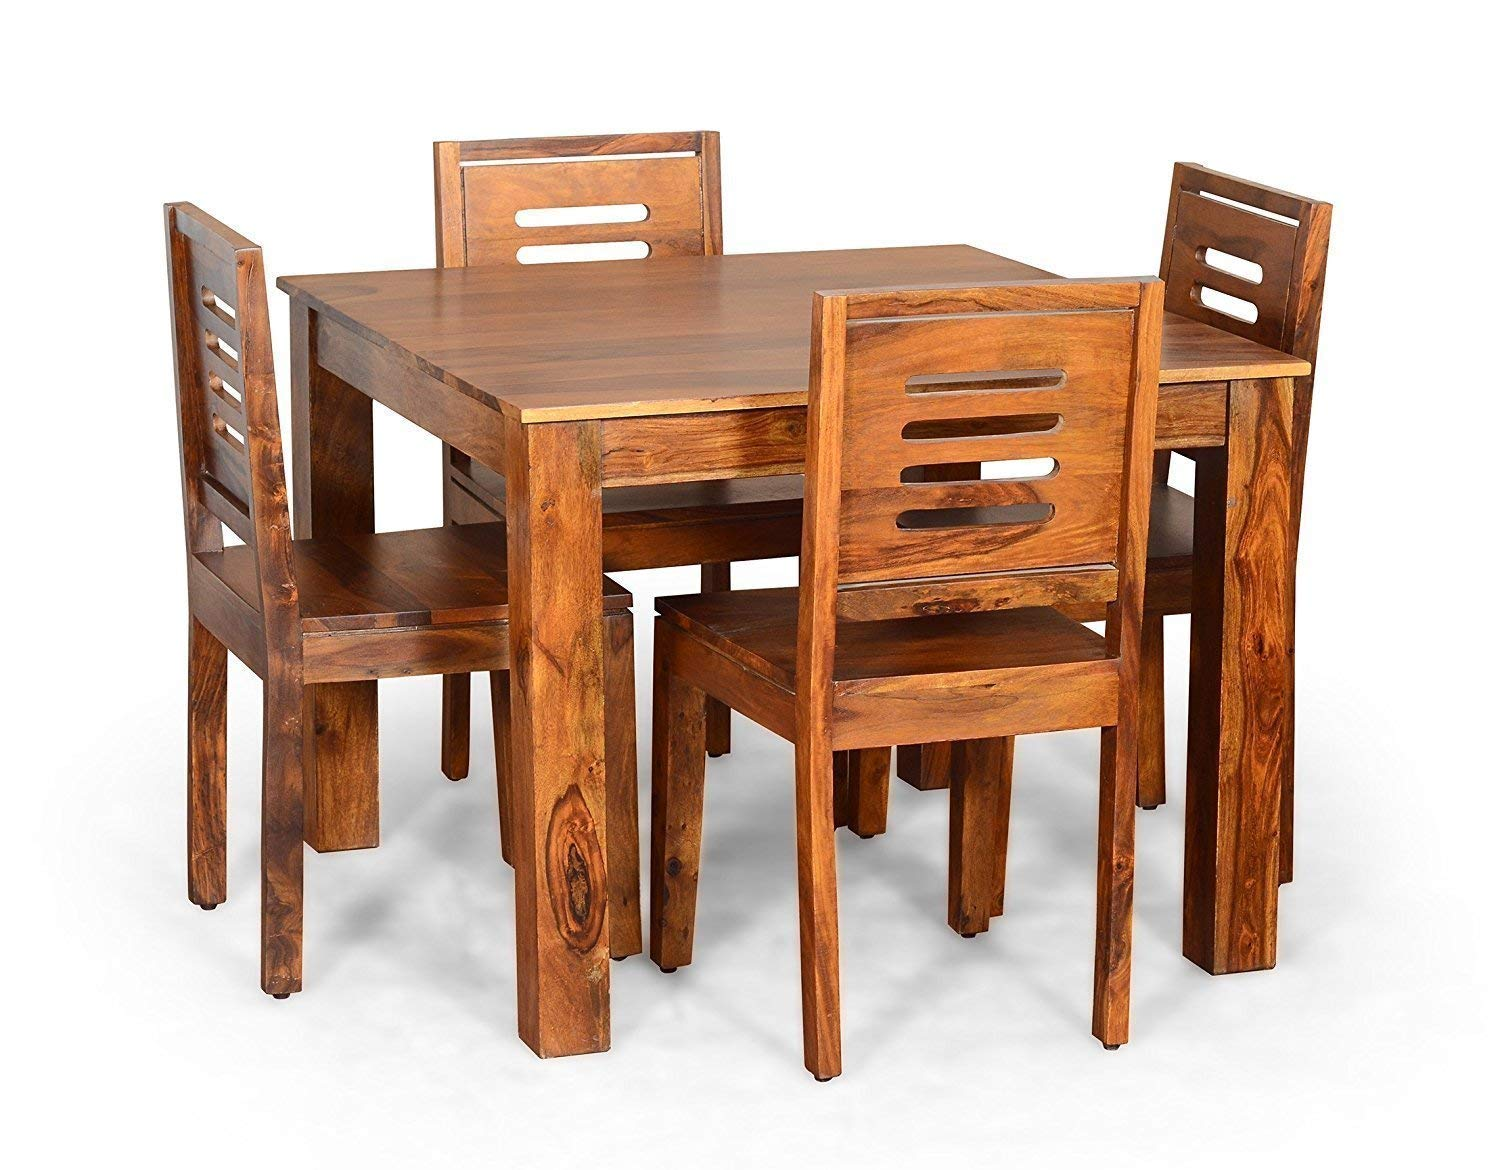 Incredible Driftingwood Sheesham Wood Dining Table Set With 4 Chairs For Living Room 4 Seater Dining Table Set Honey Finish Caraccident5 Cool Chair Designs And Ideas Caraccident5Info